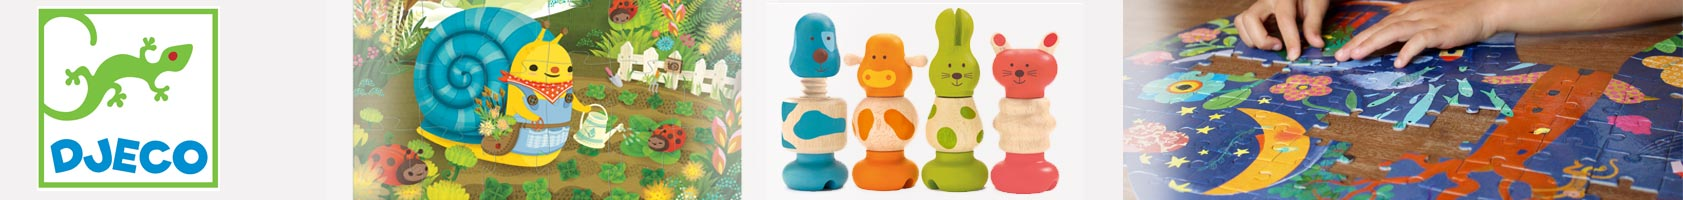 djeco-edcucational-wooden-toys